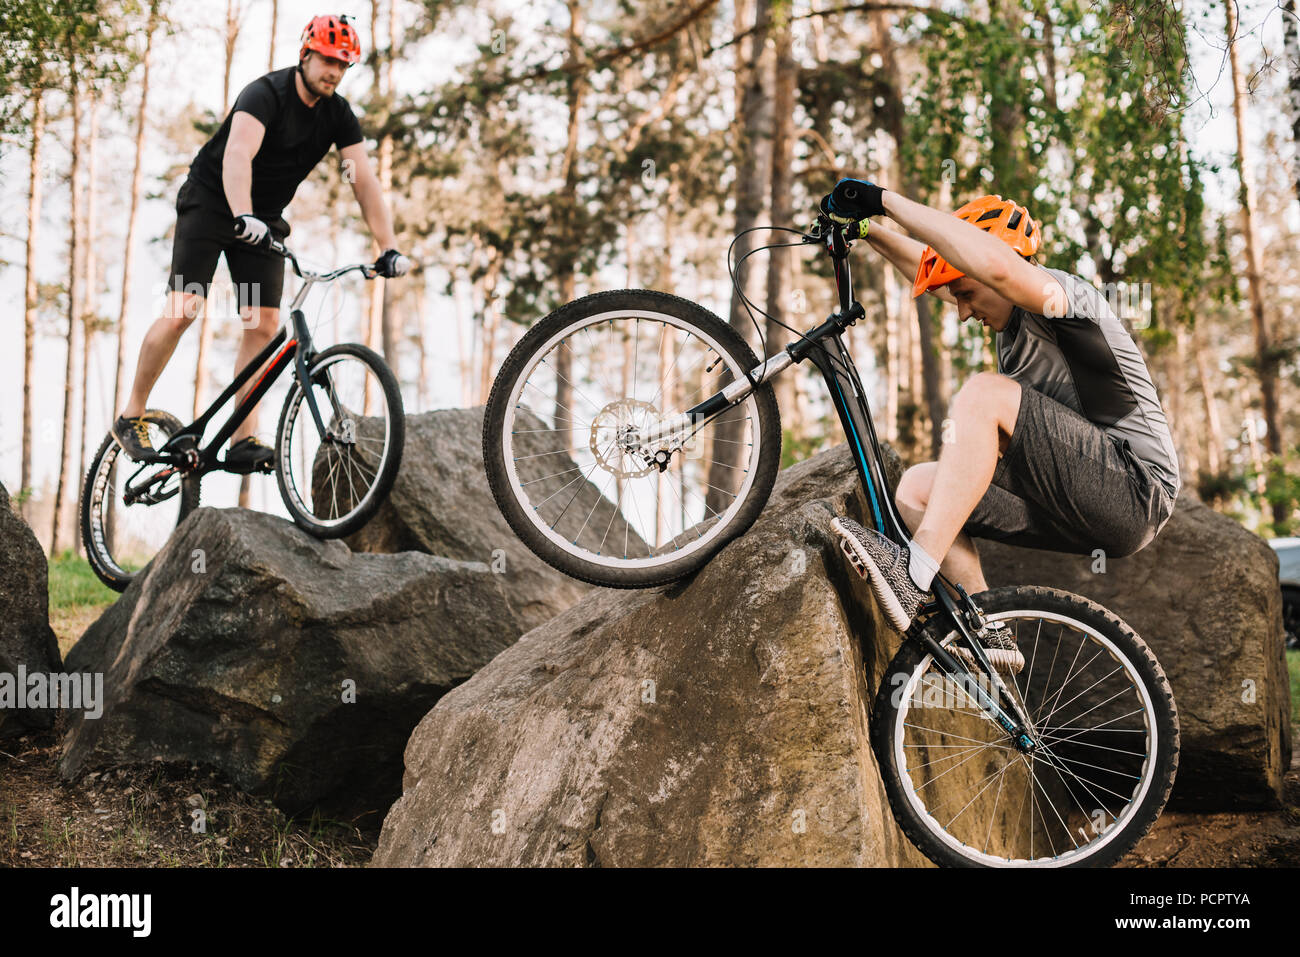 athletic young trial bikers riding on rocks outdoors - Stock Image